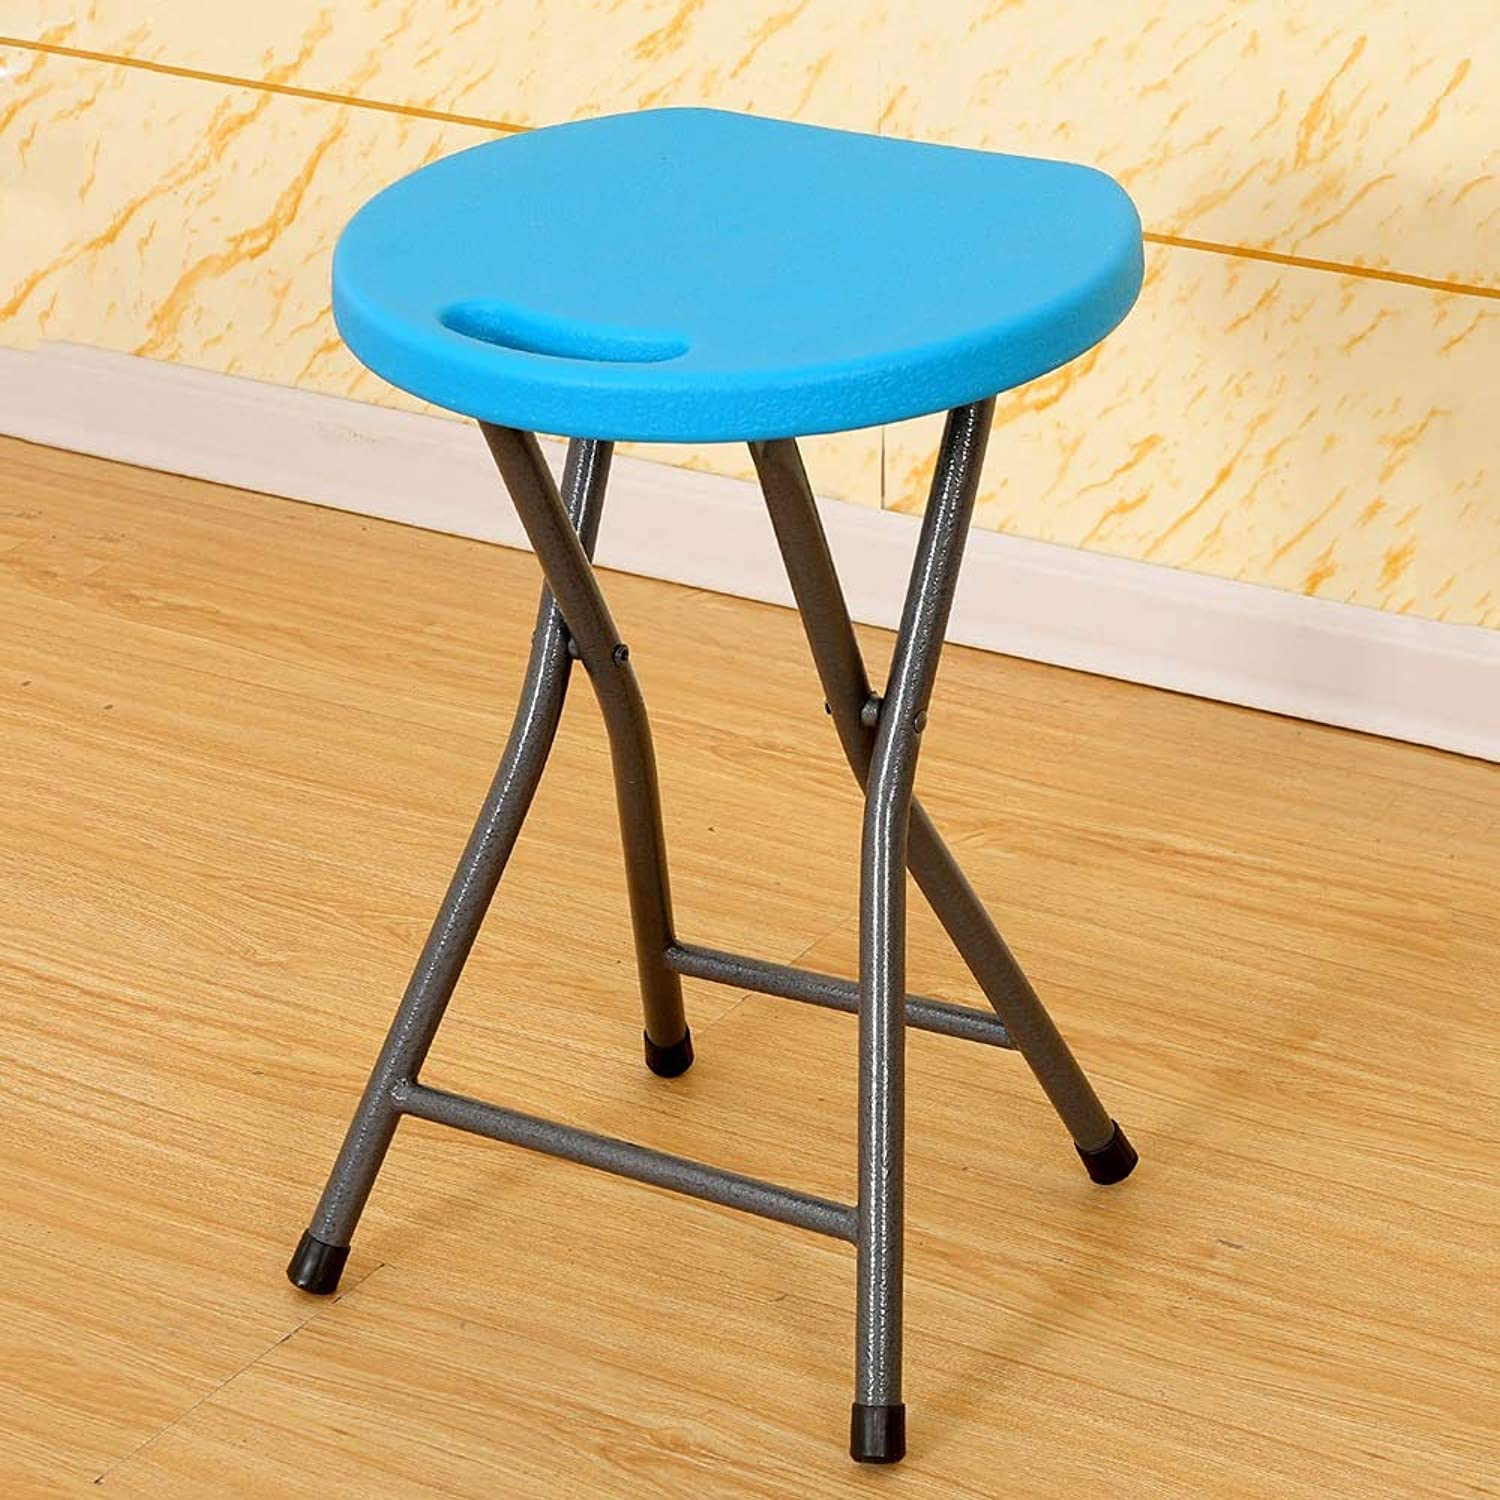 Sjch Portable Plastic Chair Durable Steel Frame Legs for 300 Pound Capacity Easy Carry Handle Weather Impact Resistant for Indoor Outdoor Use White